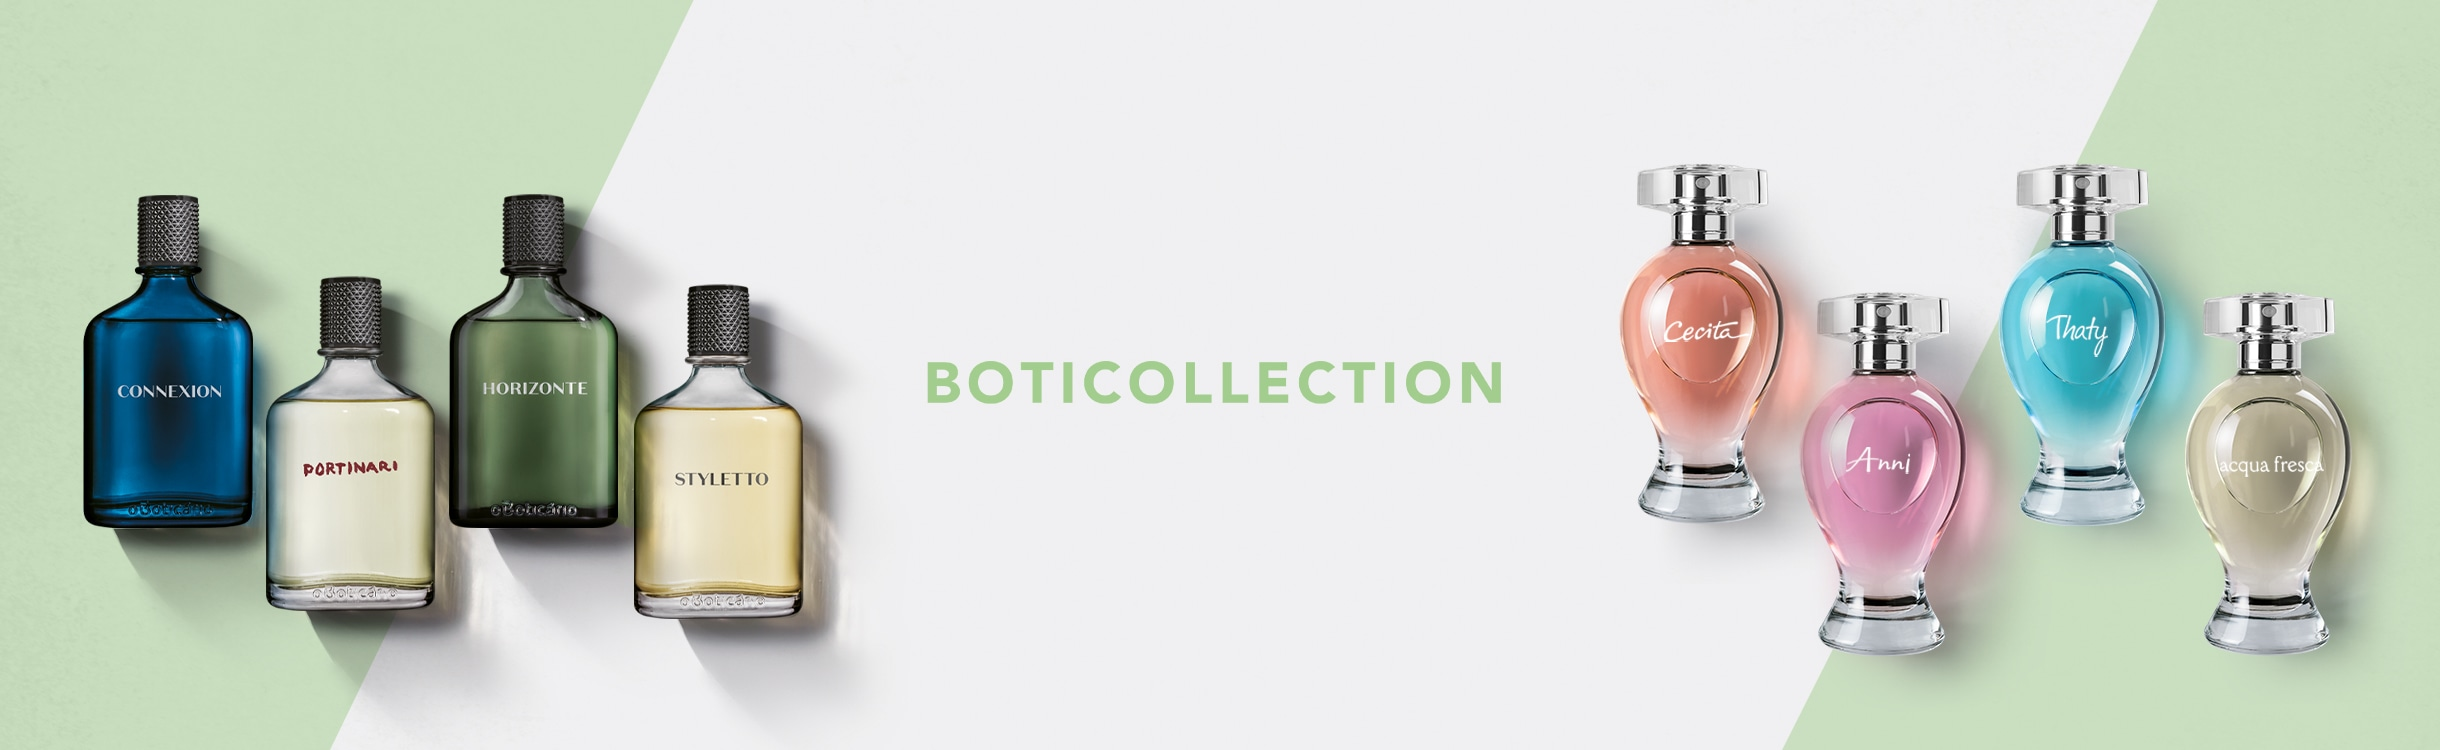 Boticollection Corpo e banho Kits de tratamento